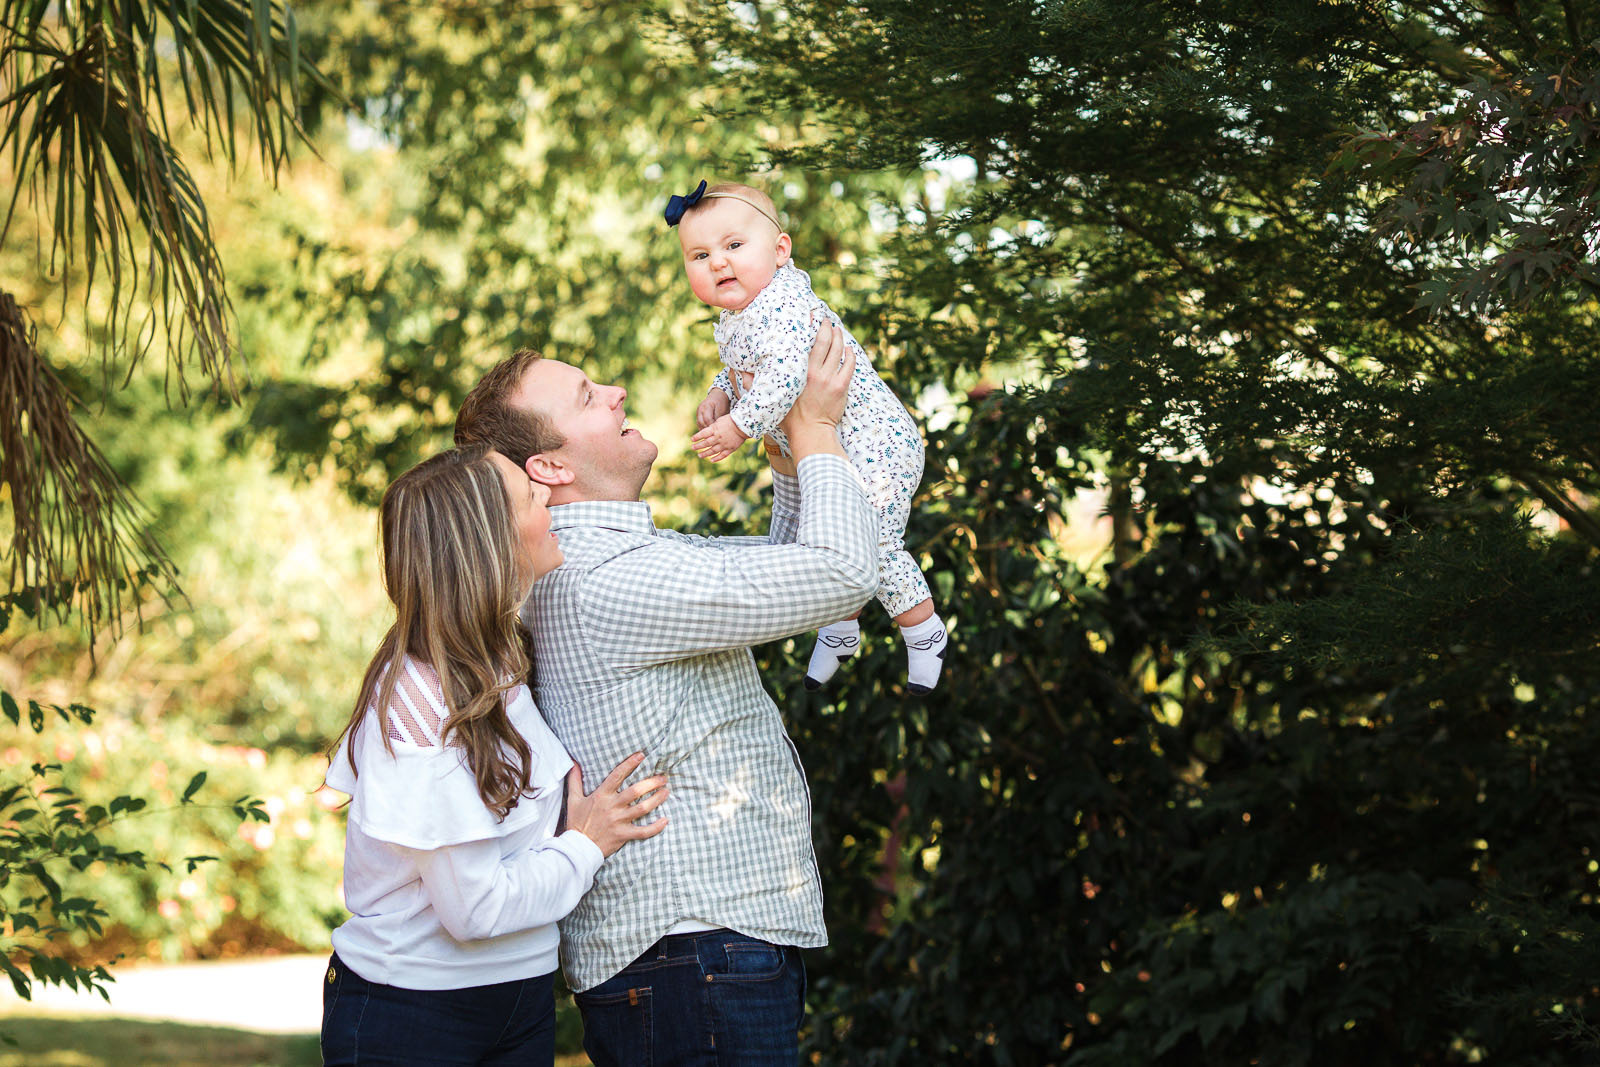 Outdoor Family Photo Session At JC Raulston Abroretum in Raleigh